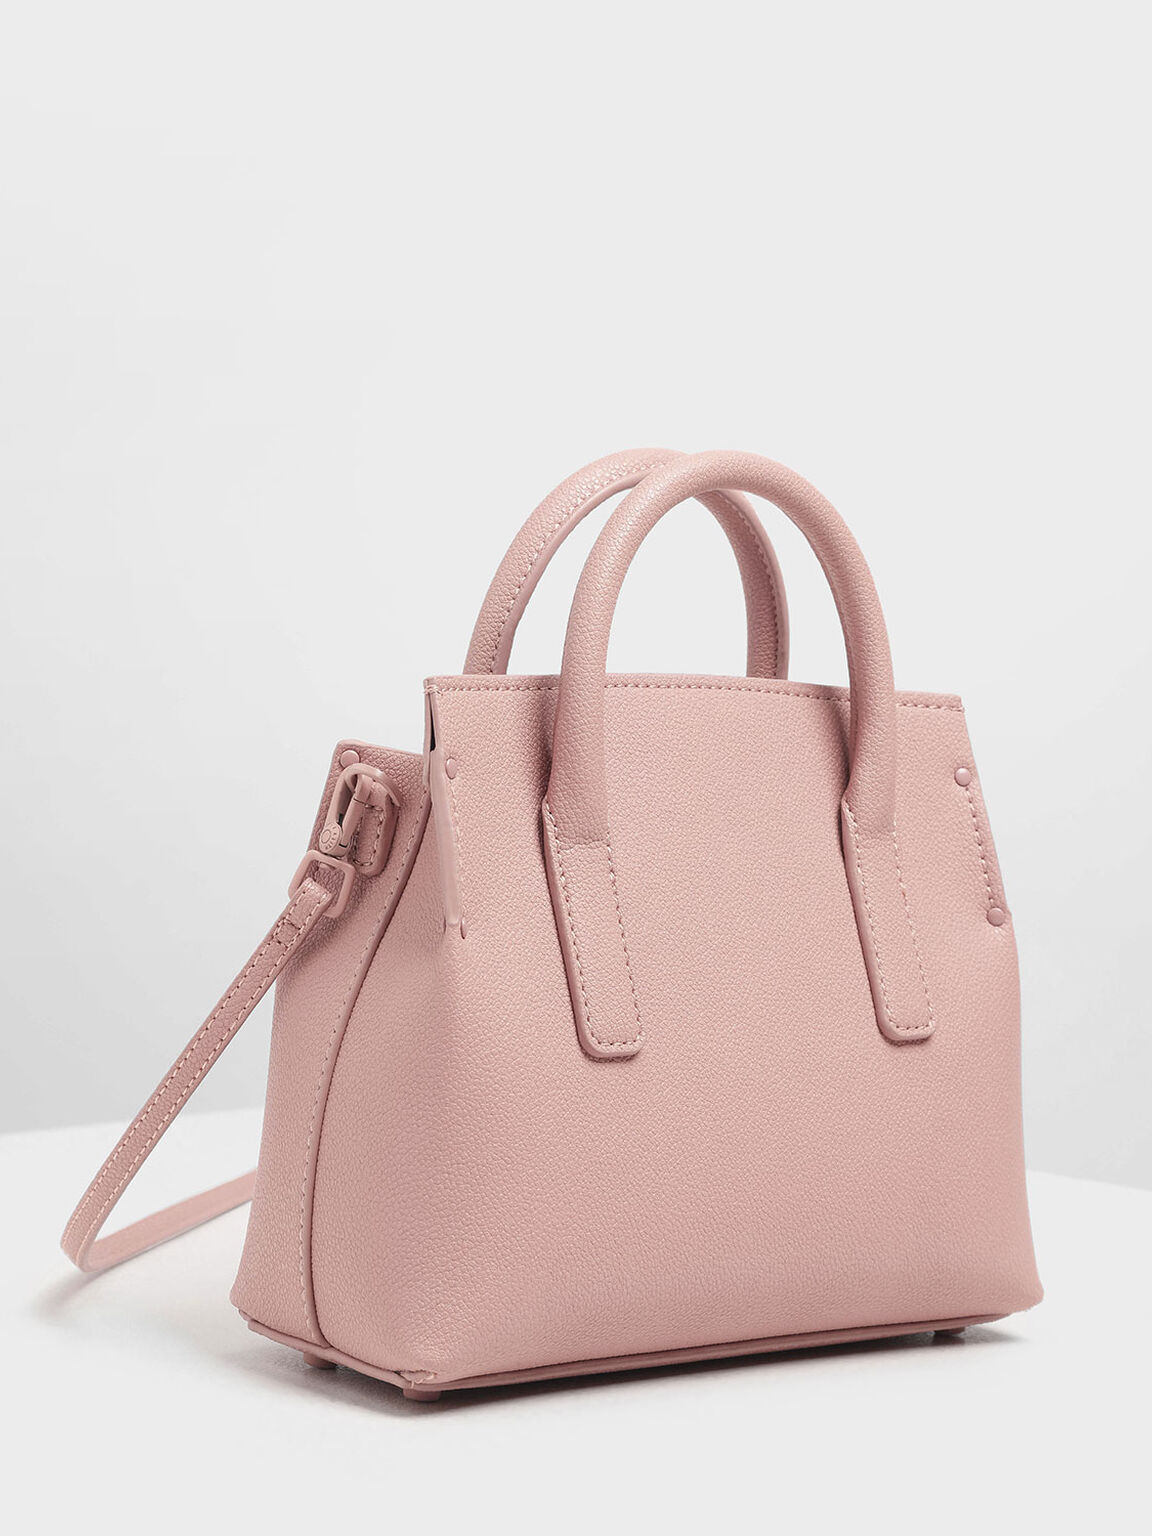 Tuck-In Flap Structured Bag, Pink, hi-res